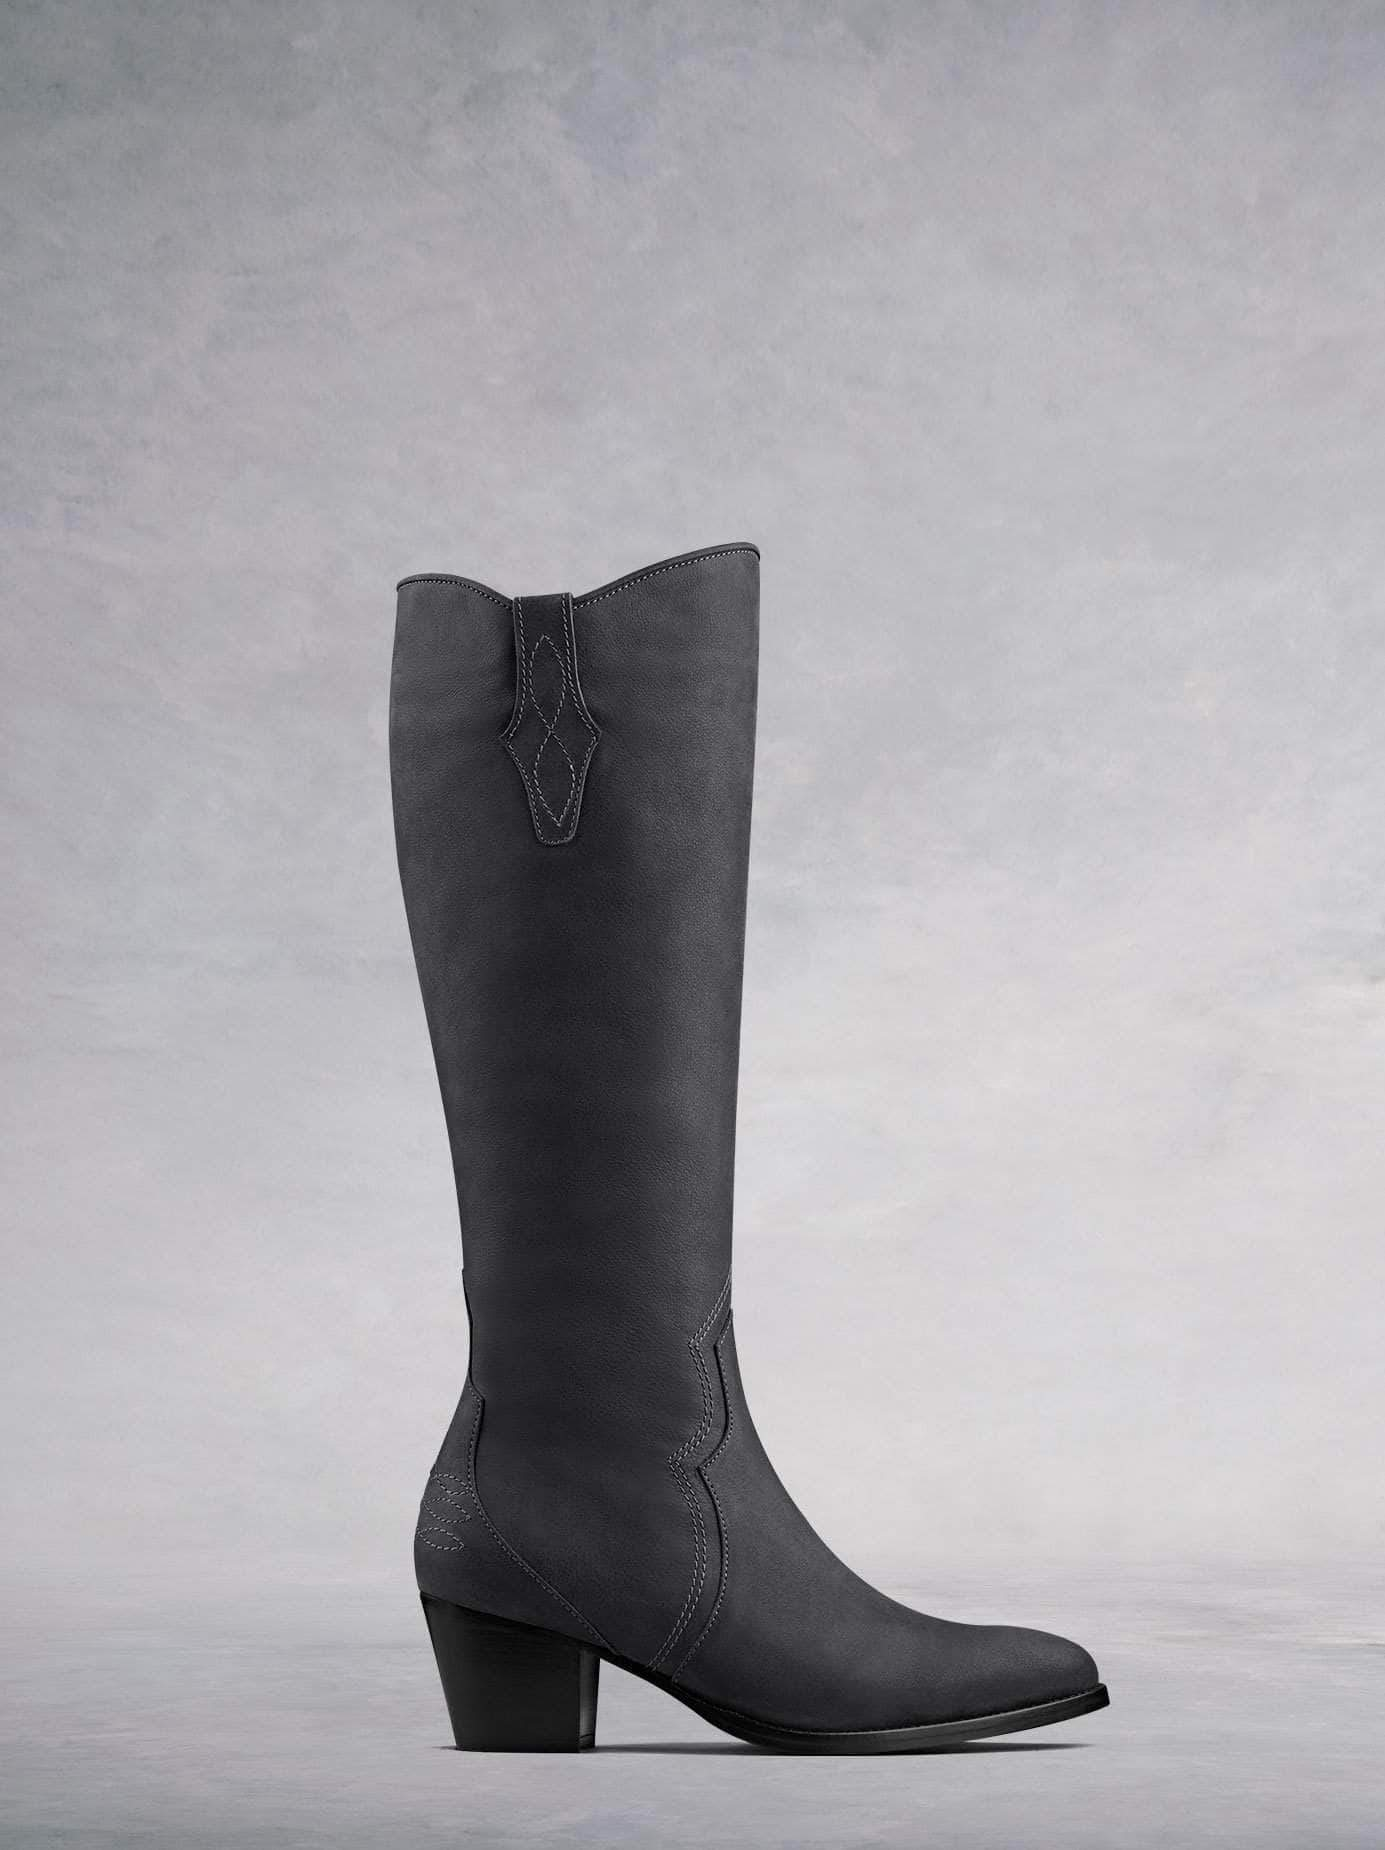 Buckland, our elegant Western-inspired knee high boot crafted from grey nubuck leather with intricate detailing. Available in a wide range of calf sizes.